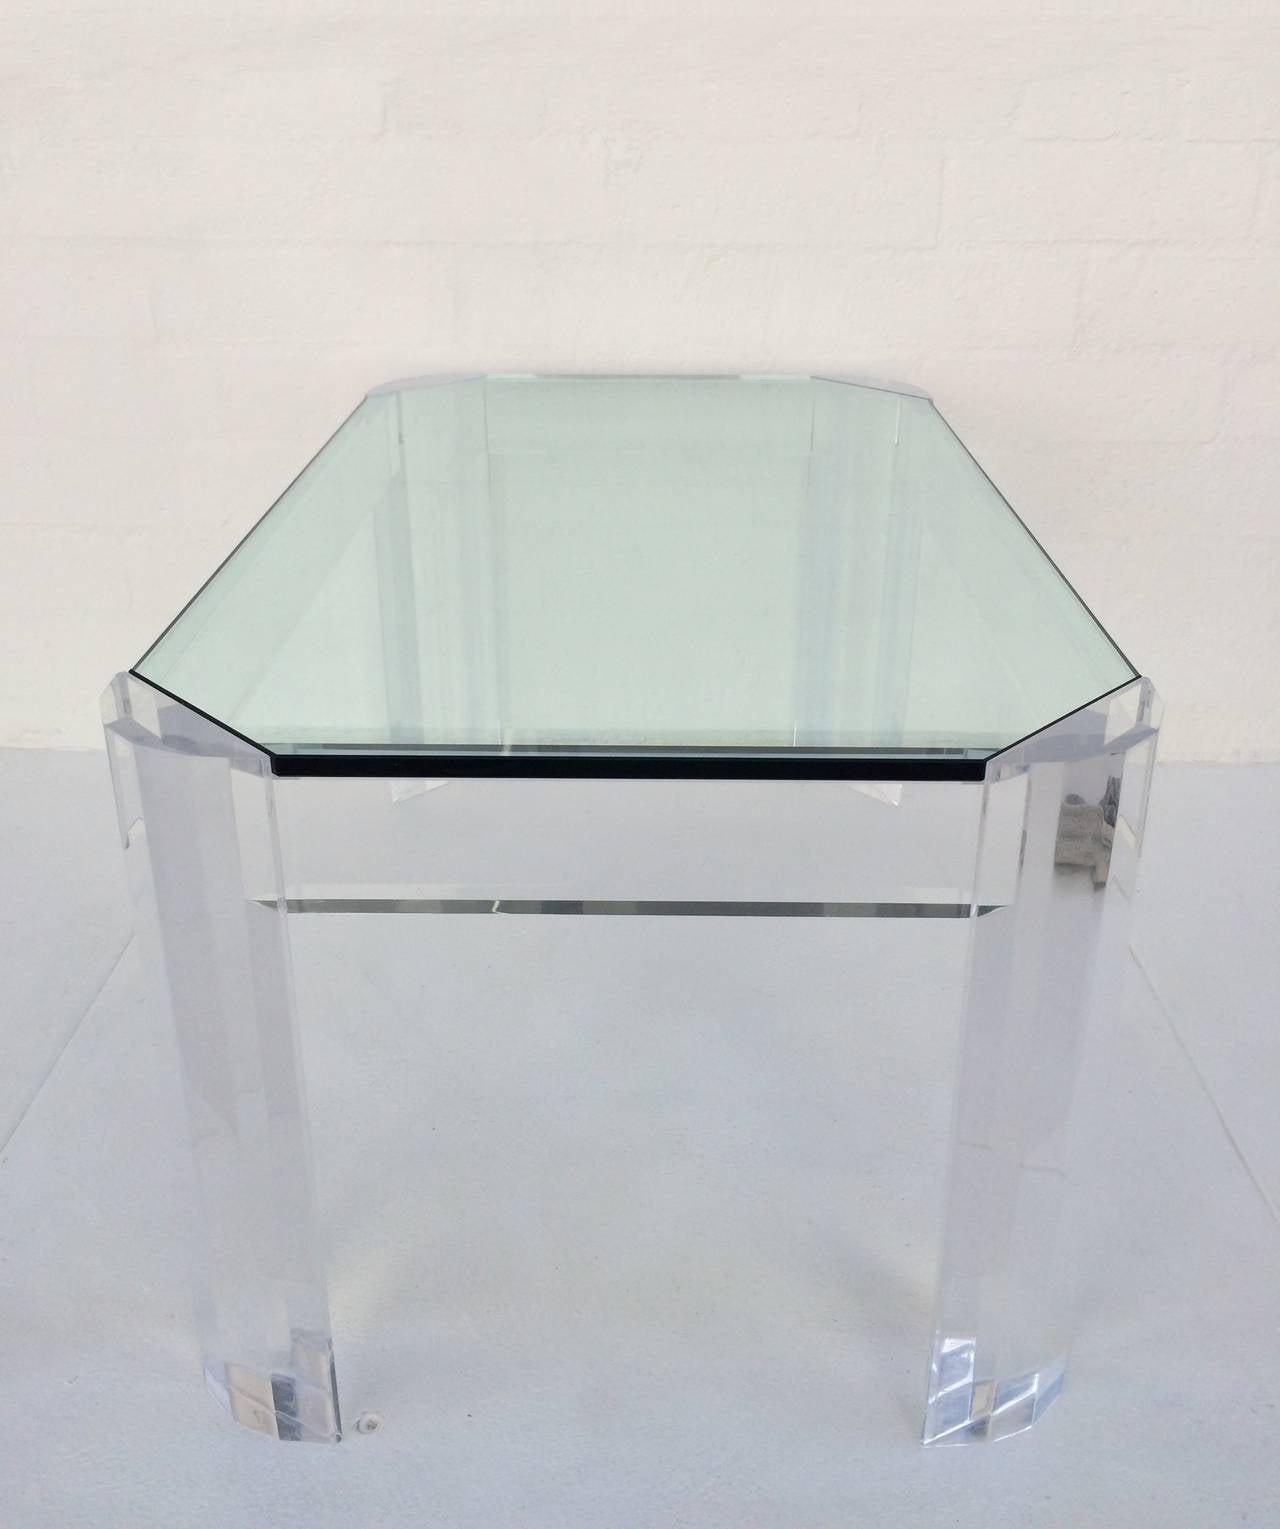 acrylic and glass coffee or cocktail table for sale at 1stdibs